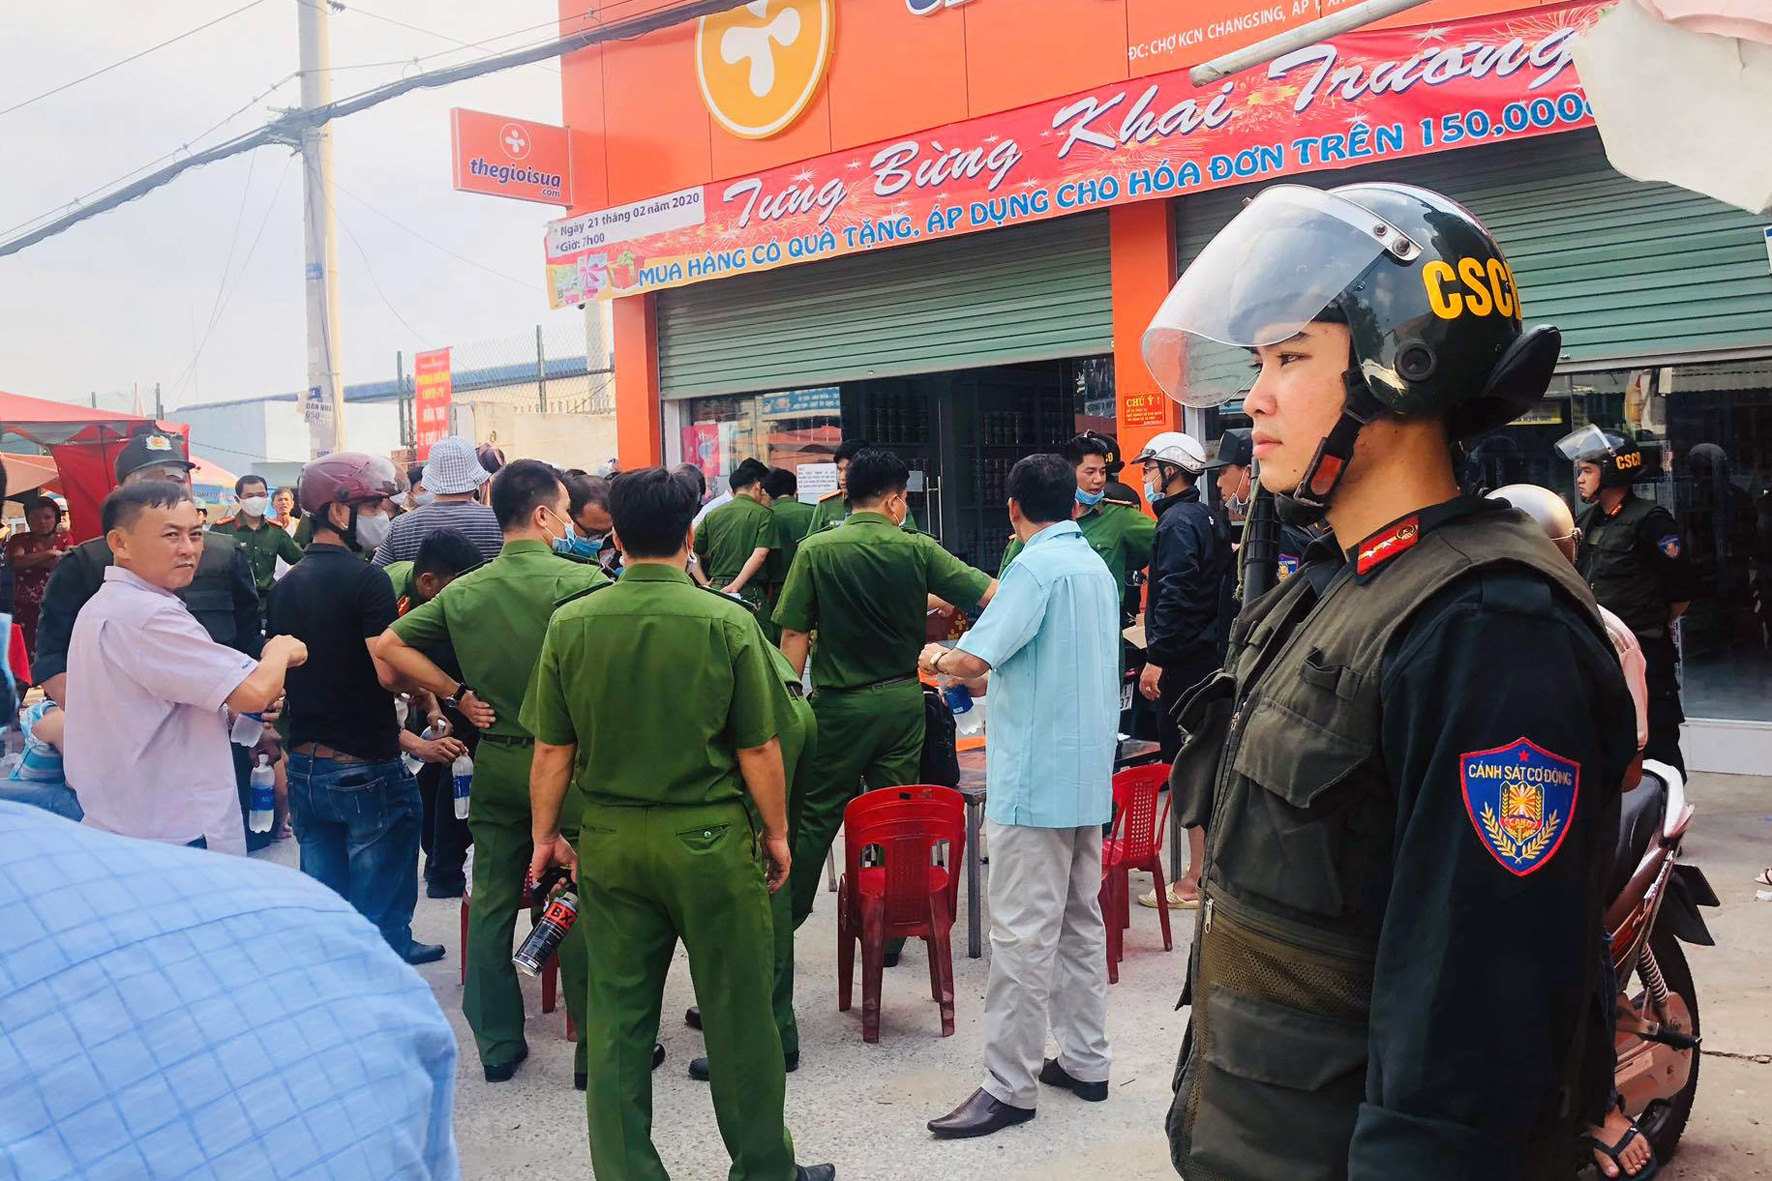 Police officers are mobilized to arrest members of a protection racket in Dong Nai Province, Vietnam, May 5, 2020. Photo: B.A. / Tuoi Tre